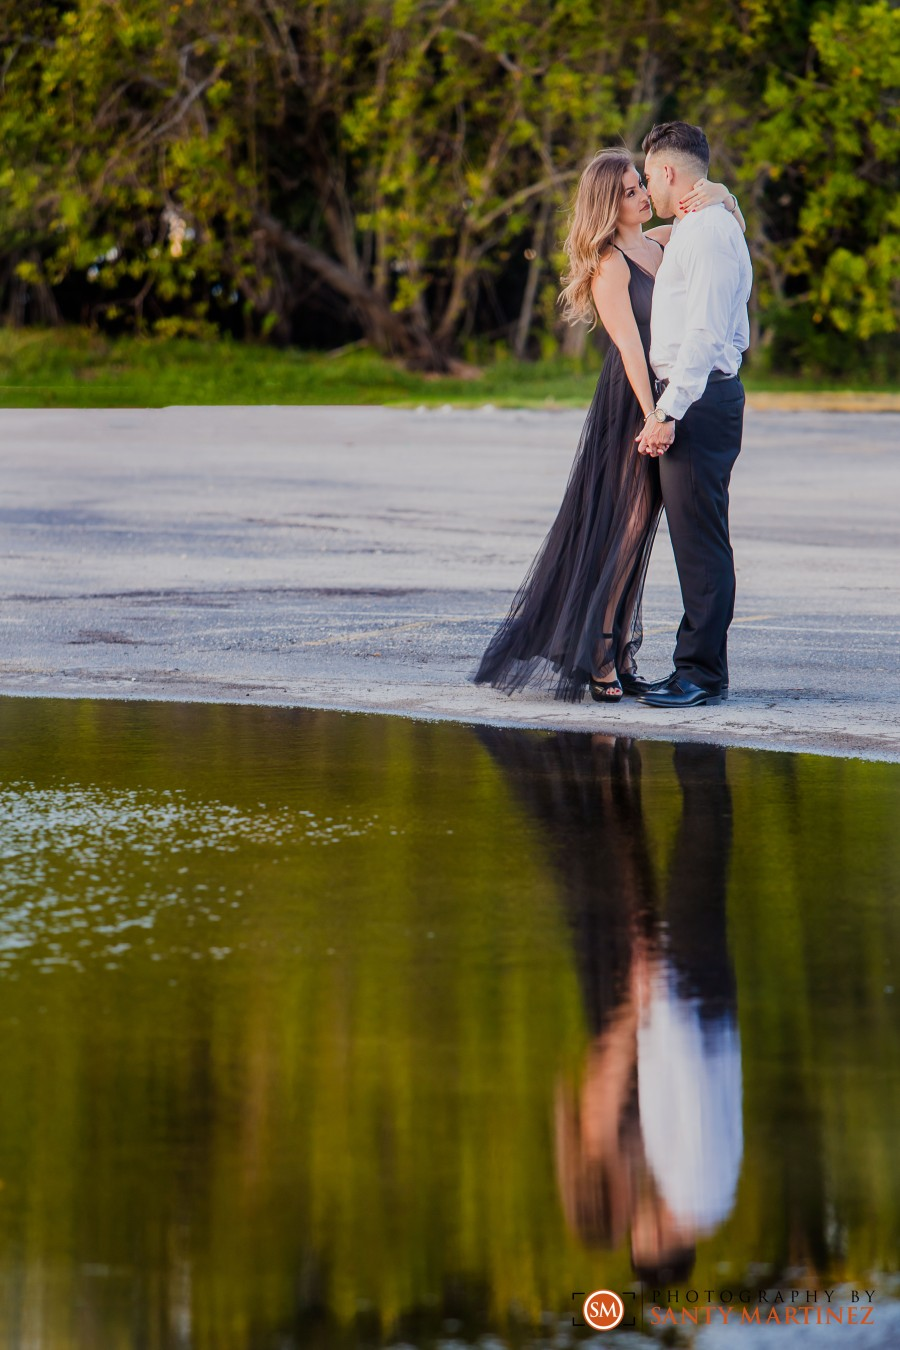 Miami Firefighter Engagement Session - Photography by Santy Martinez-21